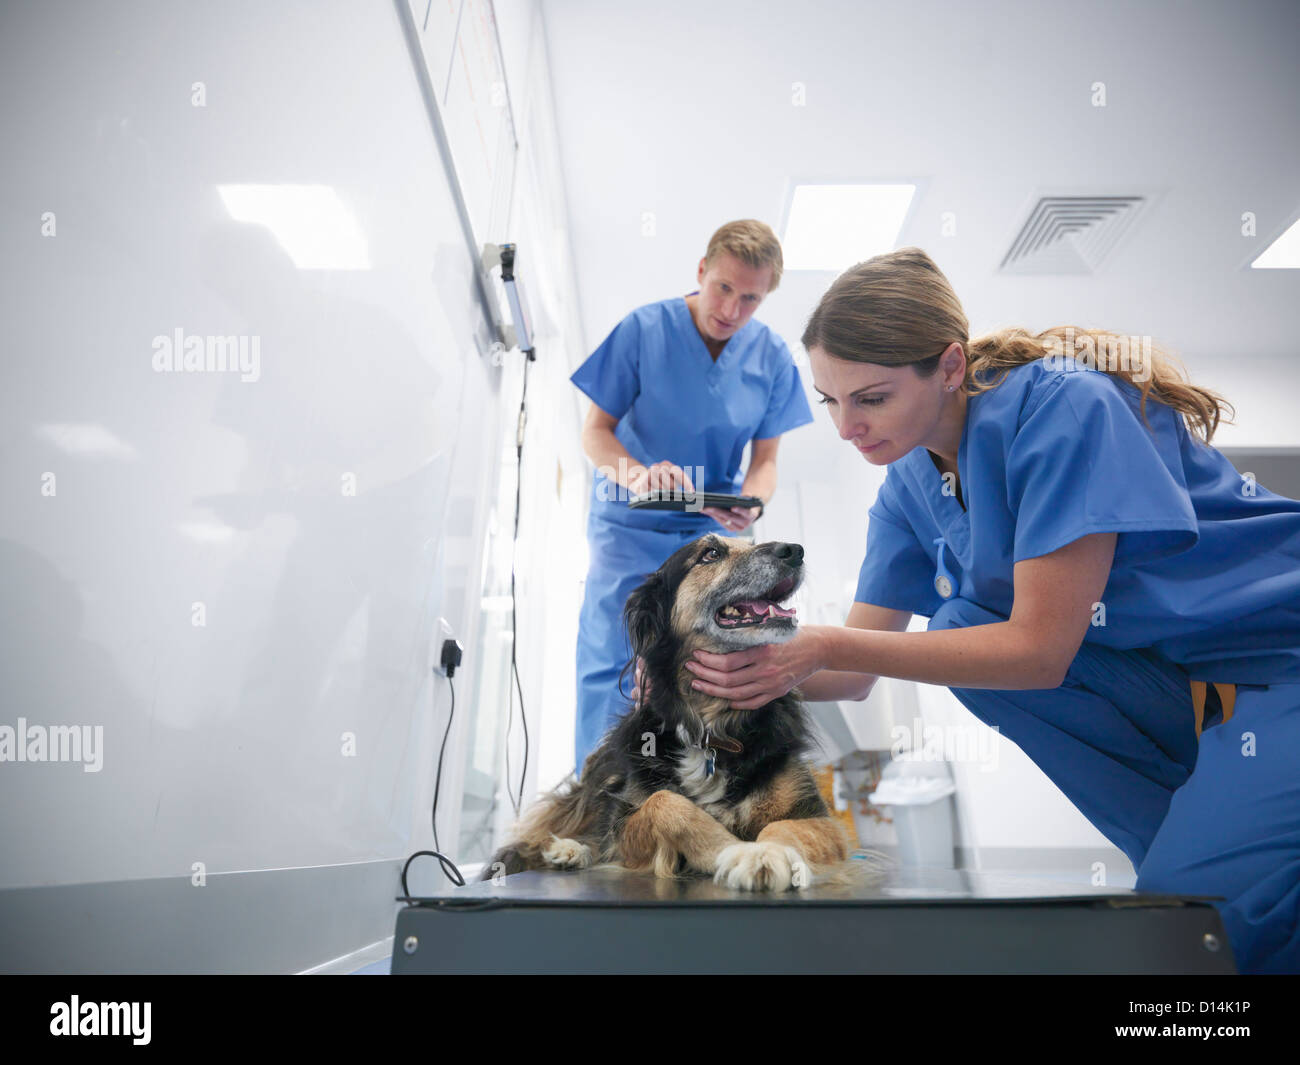 Veterinarians examining dog in office - Stock Image